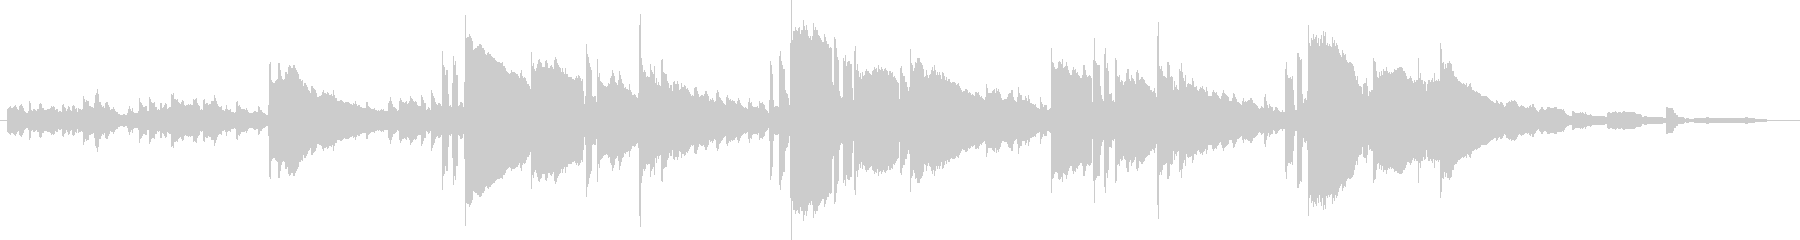 Bright and sparkling waltz BGM's unreproduced waveform